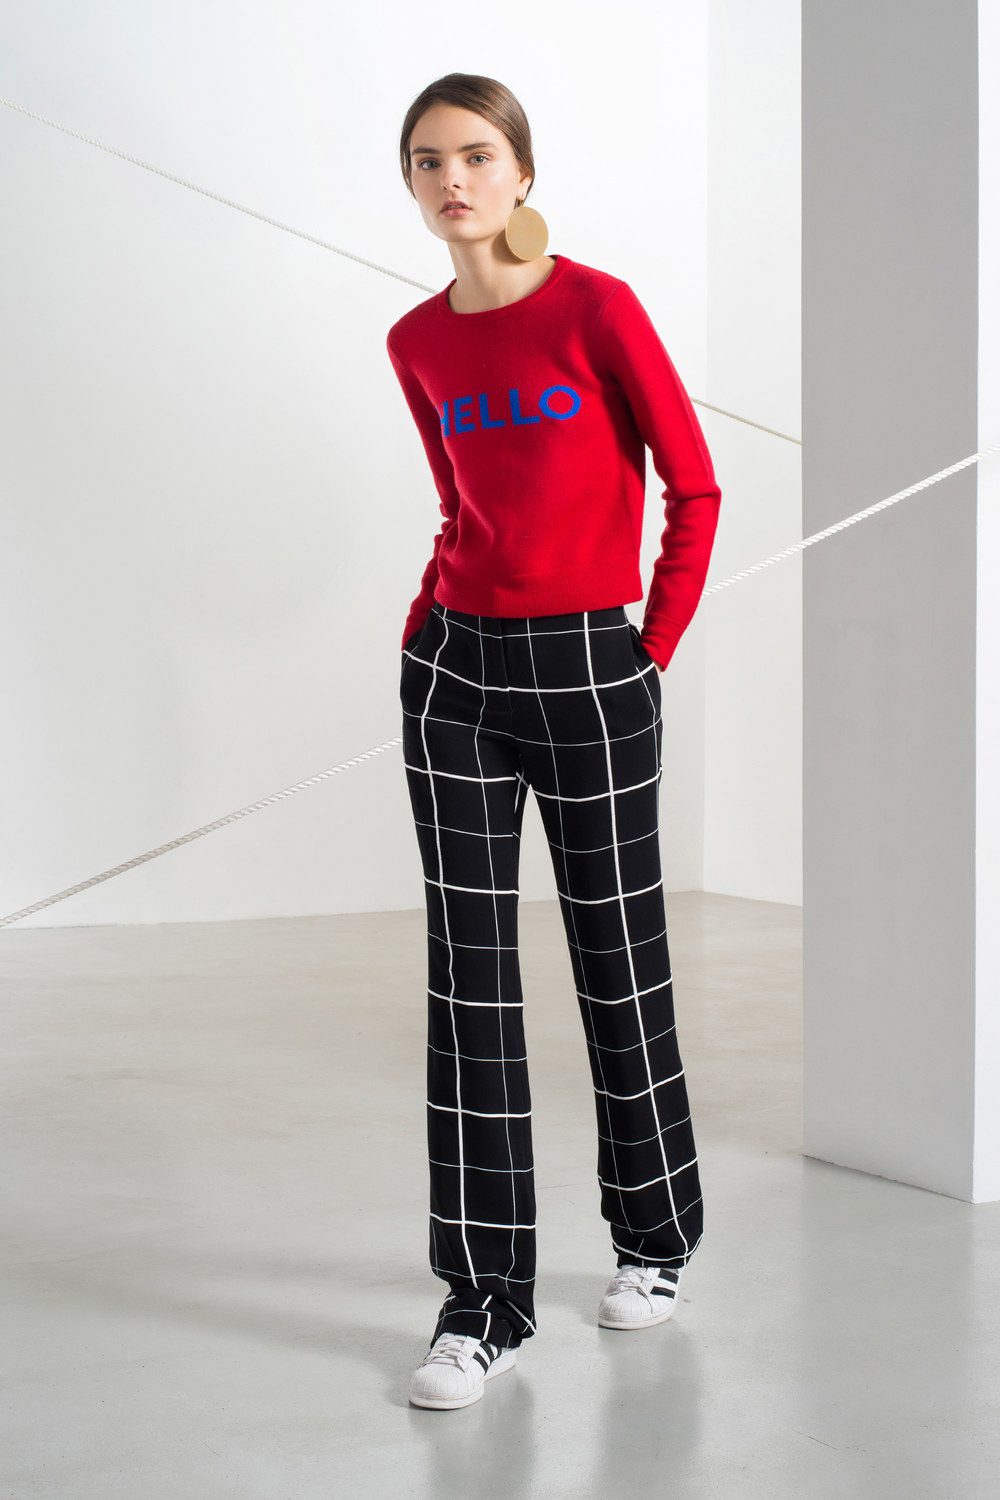 lisa-perry-pre-fall-2016-lookbook-16.jpg